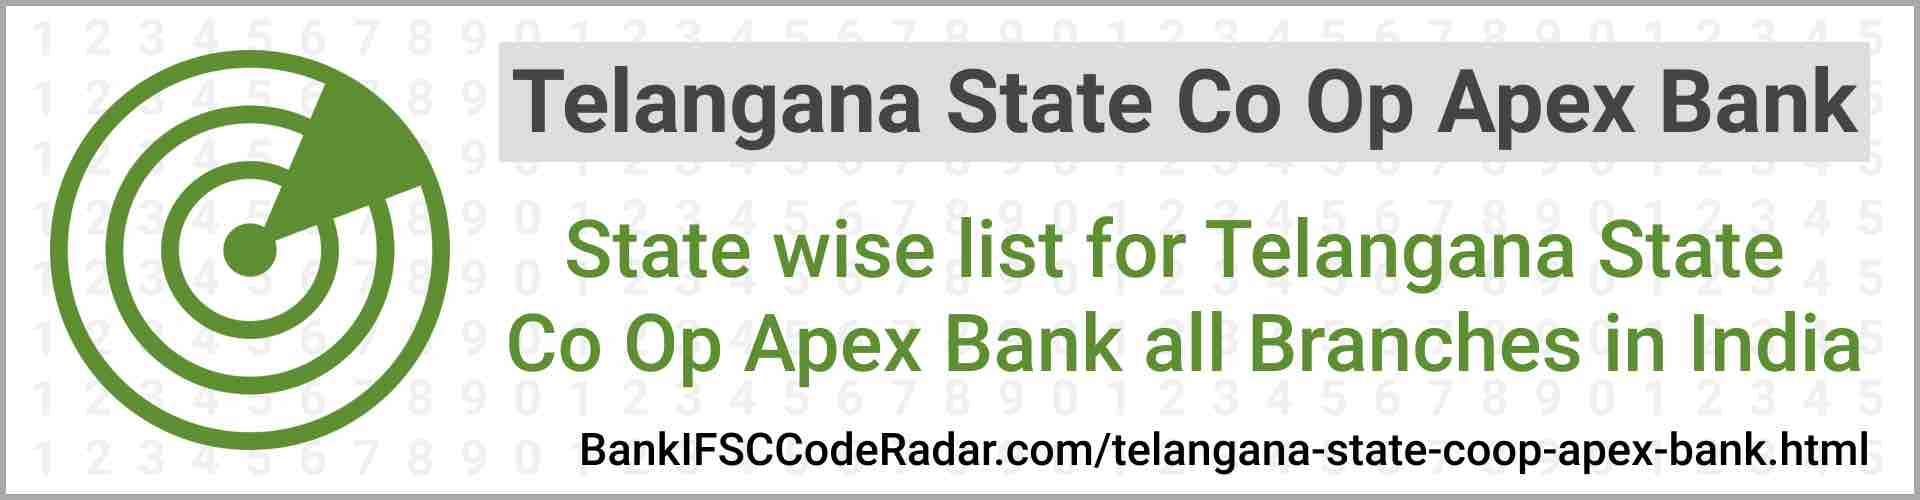 Telangana State Coop Apex Bank All Branches India